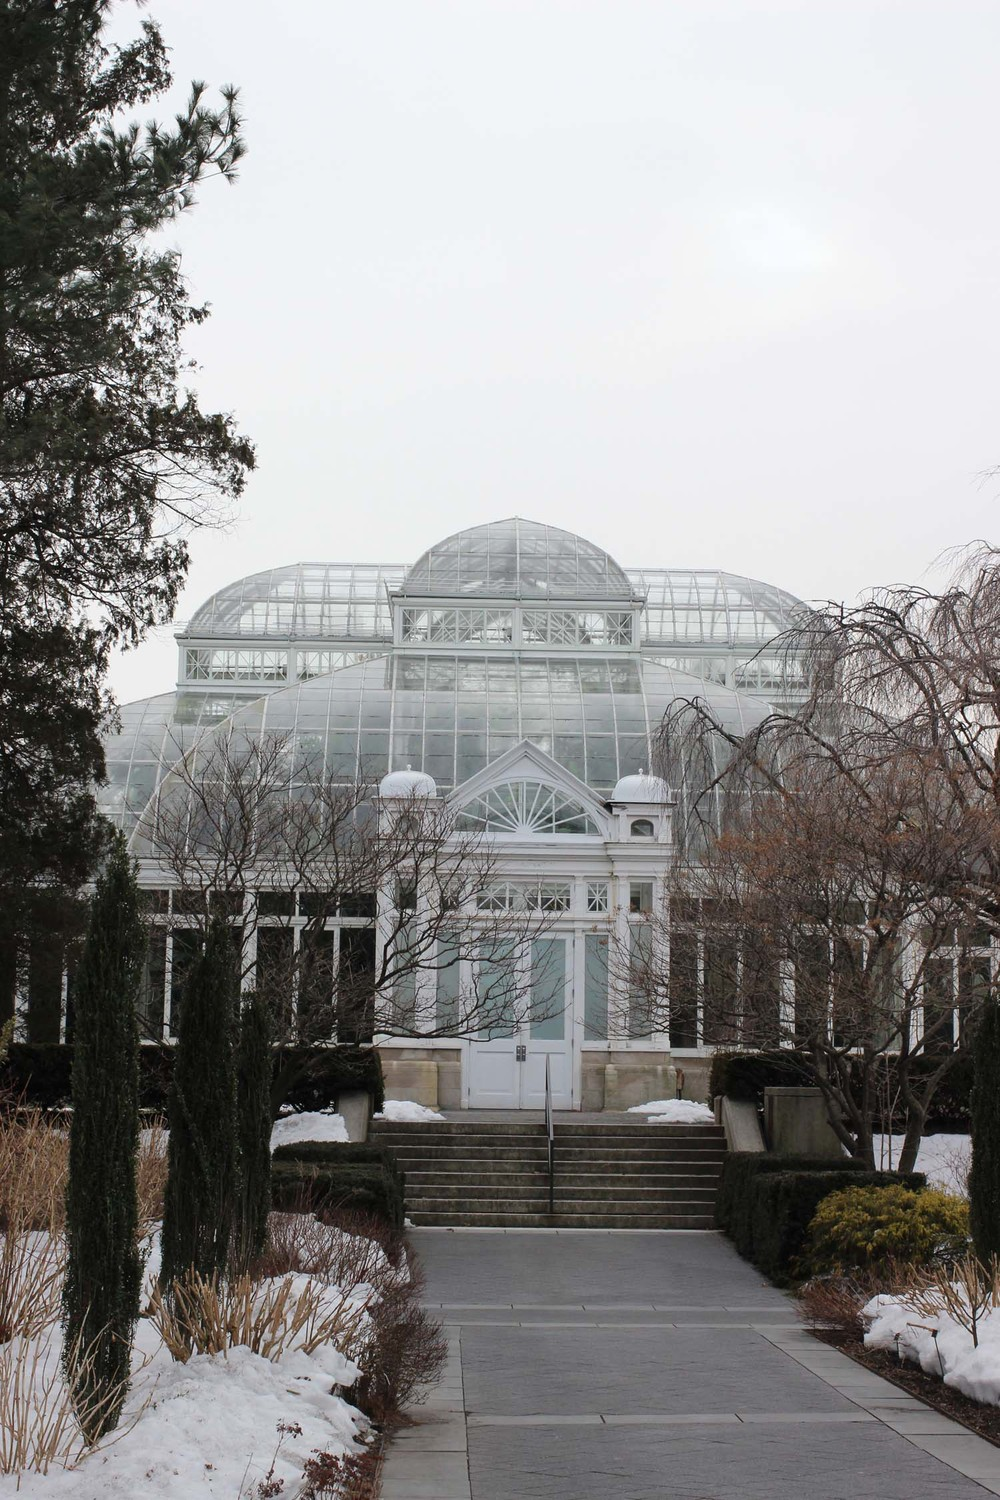 Enid A. Haupt Conservatory; Image: Laura Messersmith